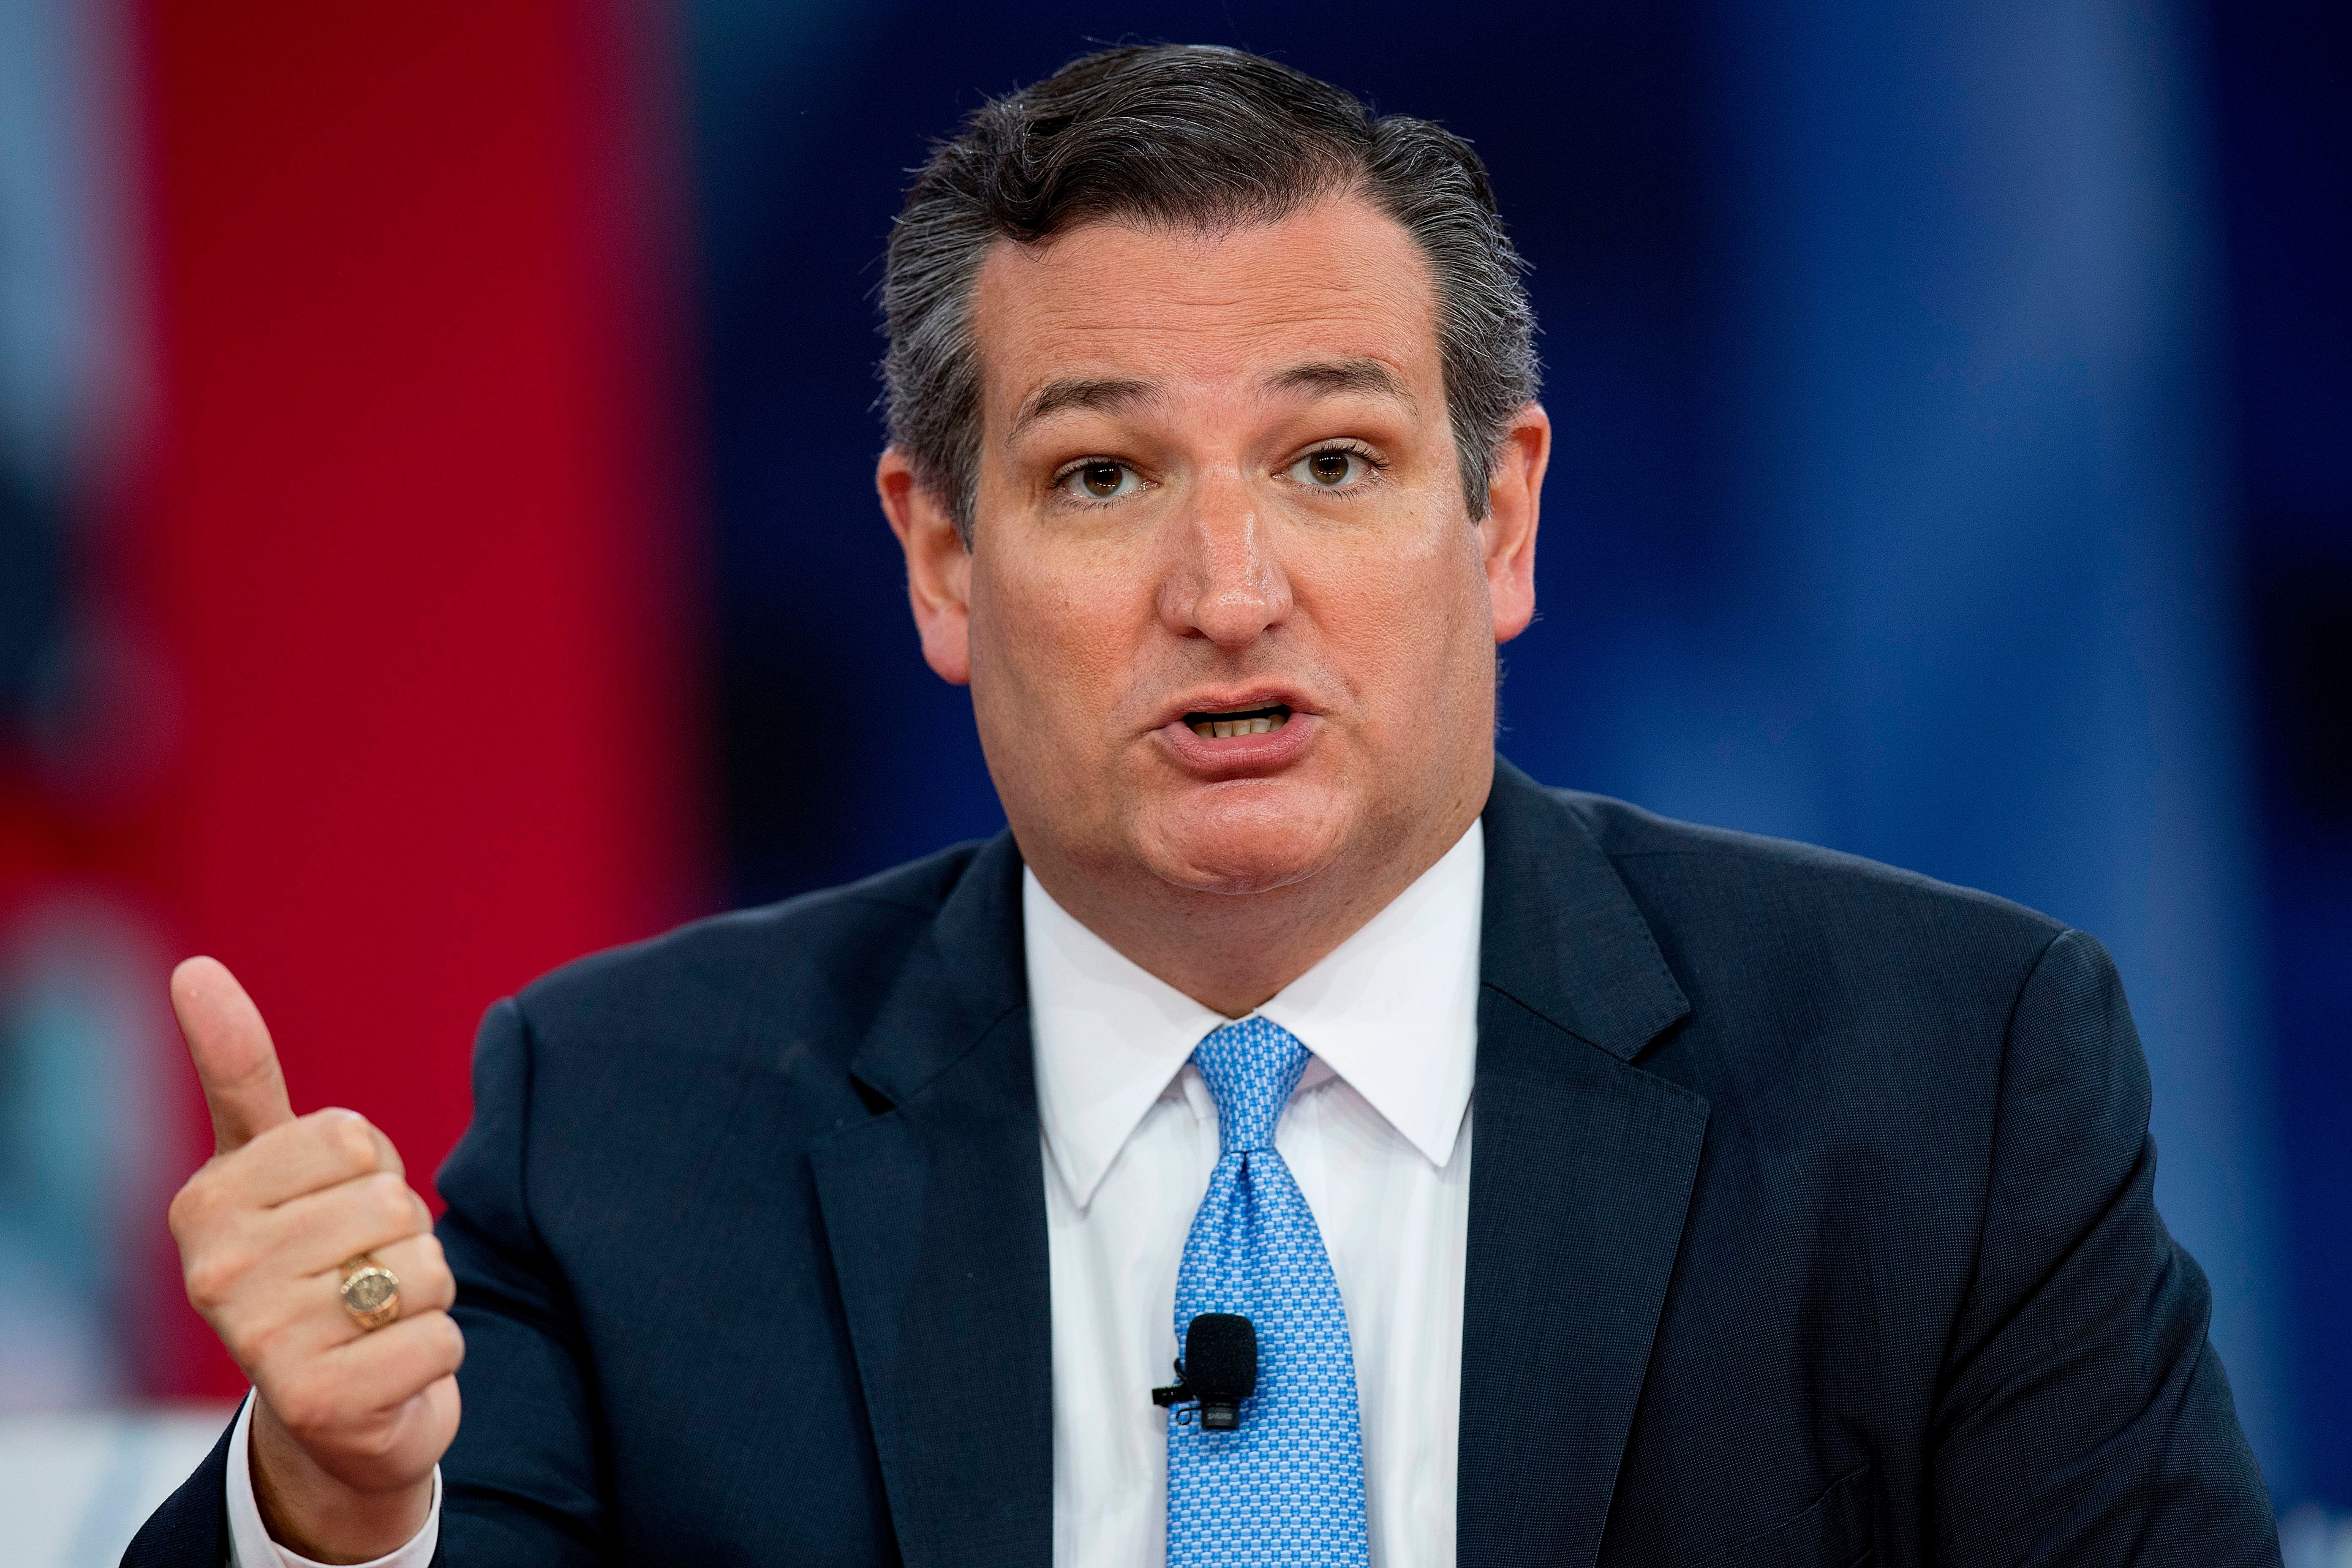 US Senator Ted Cruz, R-Texas speaks during the 2018 Conservative Political Action Conference at National Harbor in Oxon Hill, Maryland, on February 22, 2018. / AFP PHOTO / JIM WATSON        (Photo credit should read JIM WATSON/AFP/Getty Images)